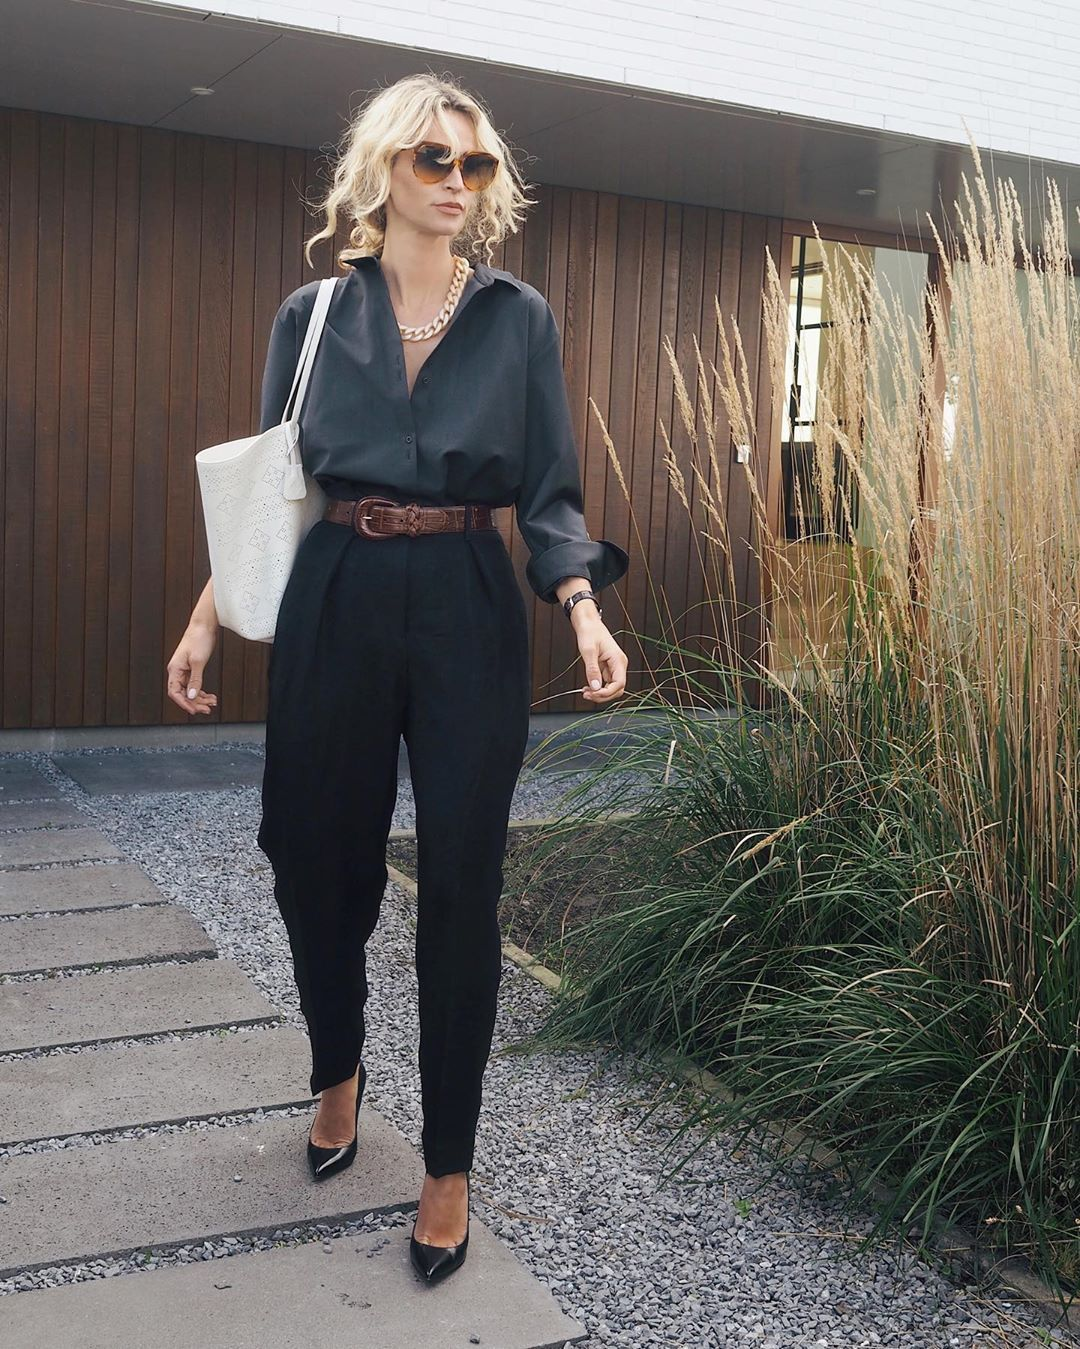 """Anouk Yve on Instagram: """"Going somewhere: 1. To the supermarket 2. To school to pick up my 4yr old 3. Back inside to change heels into flats. All bets are open..…"""""""